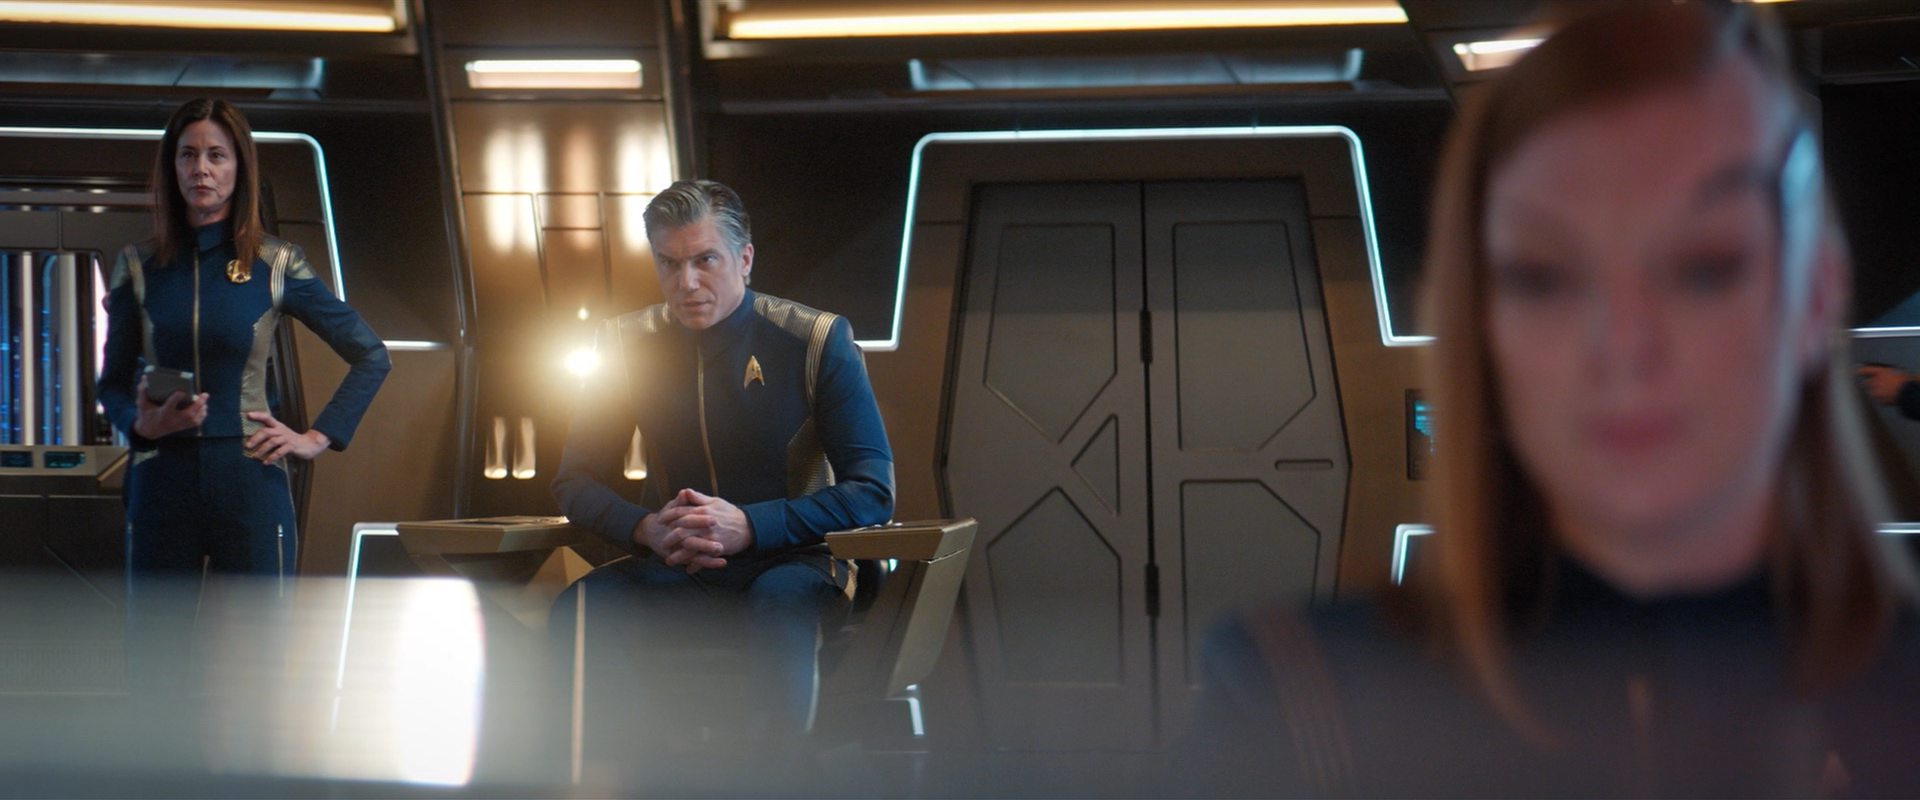 extant_StarTrekDiscovery_2x09-ProjectDaedalus_02446.jpg